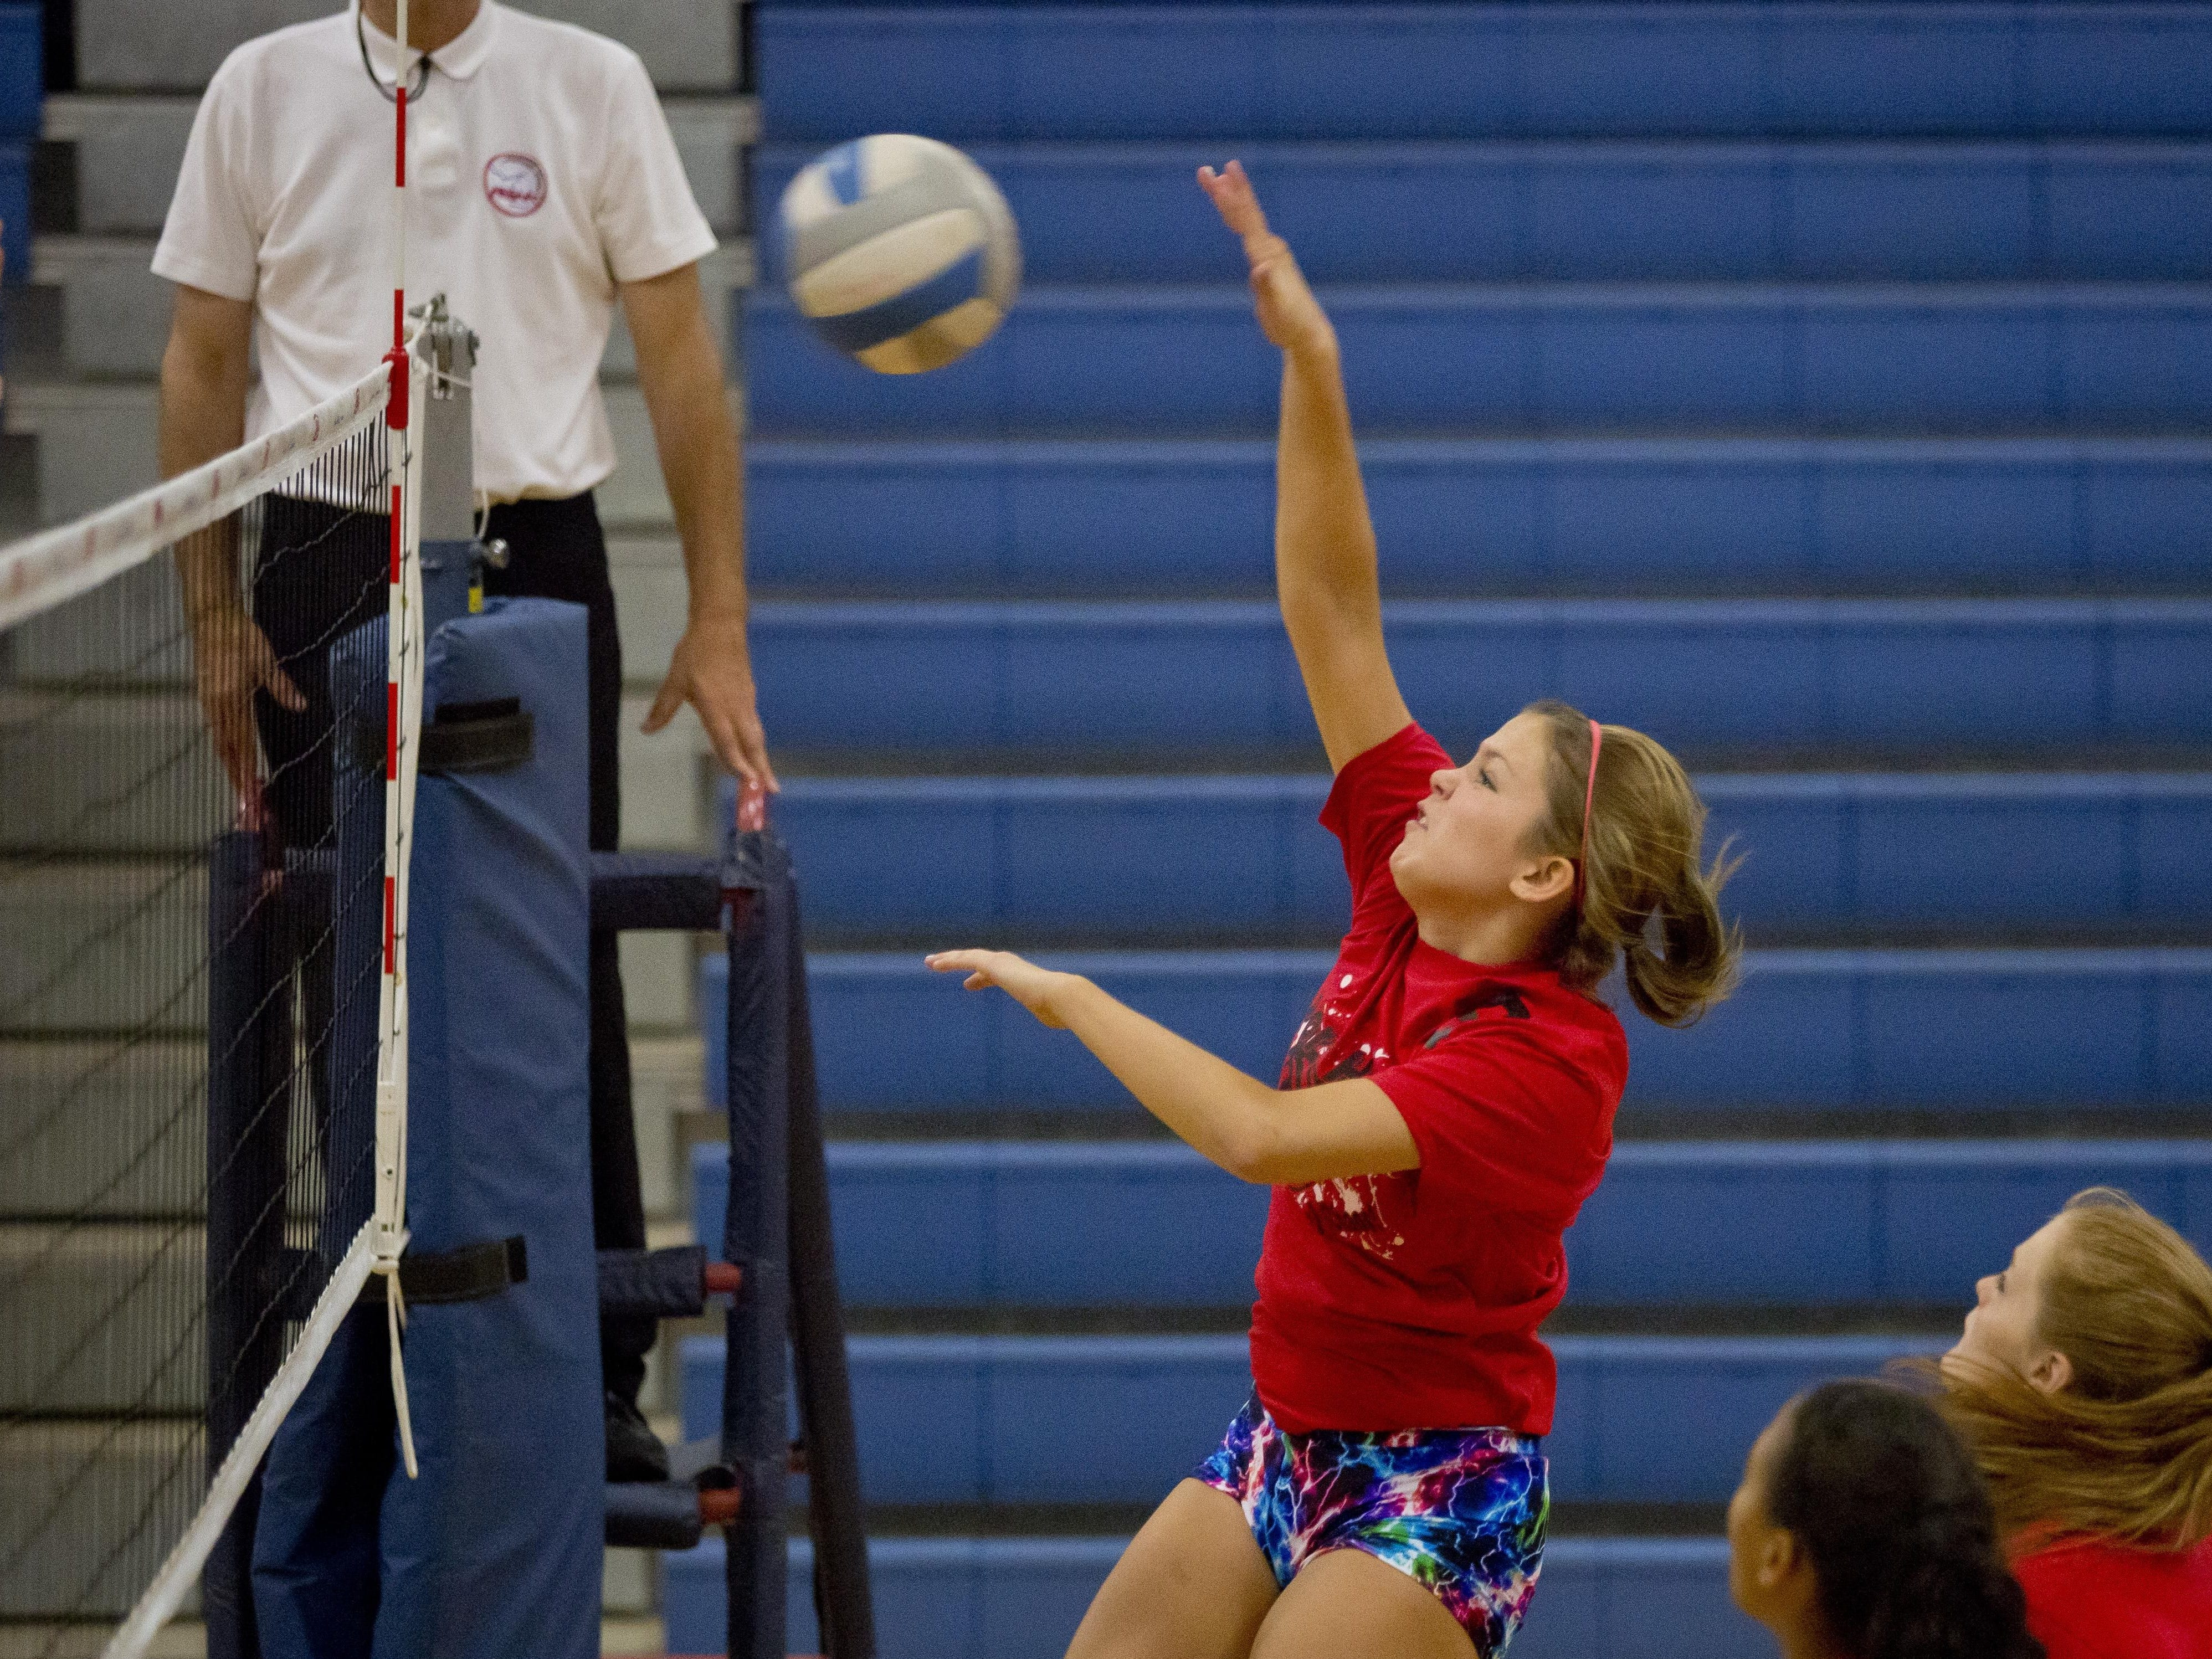 Port Huron's Brittany Goodwin spikes the ball during the Pioneer Volleyball Invitational Saturday, September 12, 2015 at Cros-Lex High School.